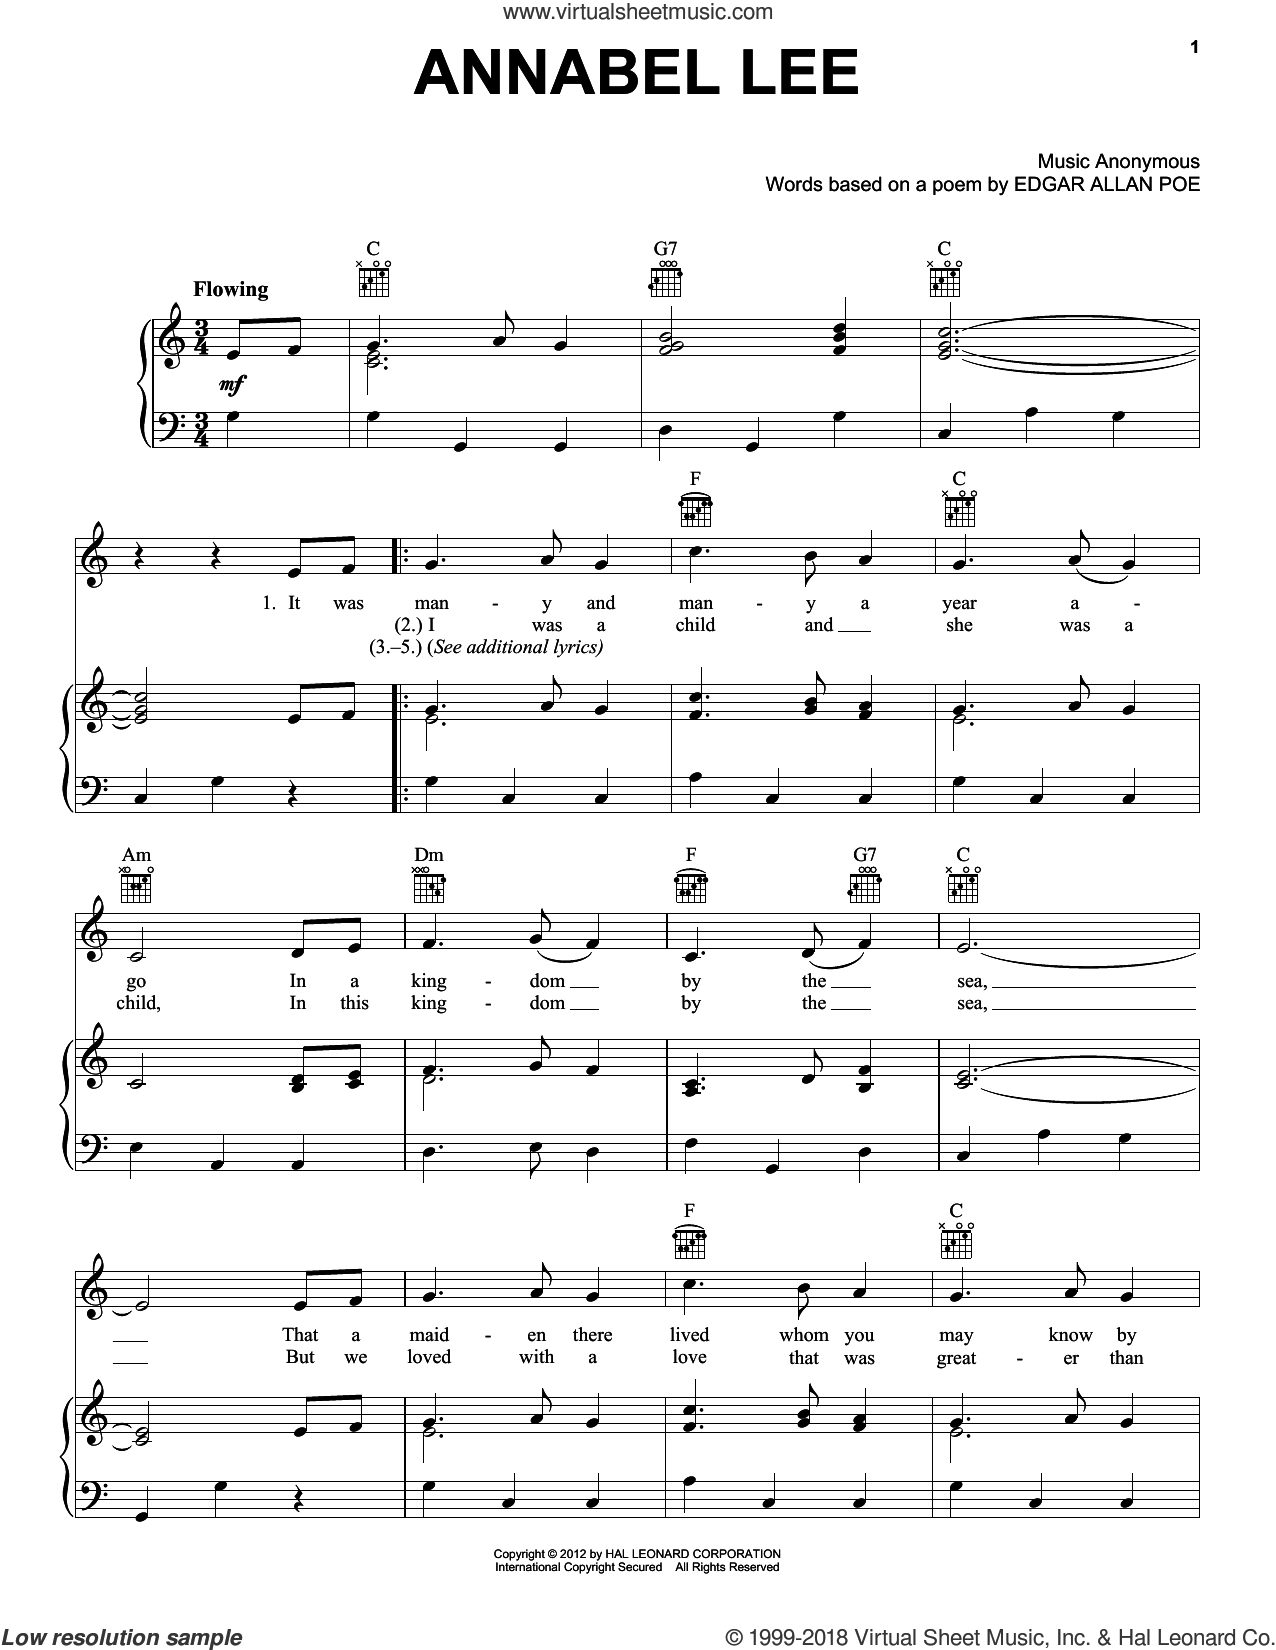 Annabel Lee sheet music for voice, piano or guitar. Score Image Preview.